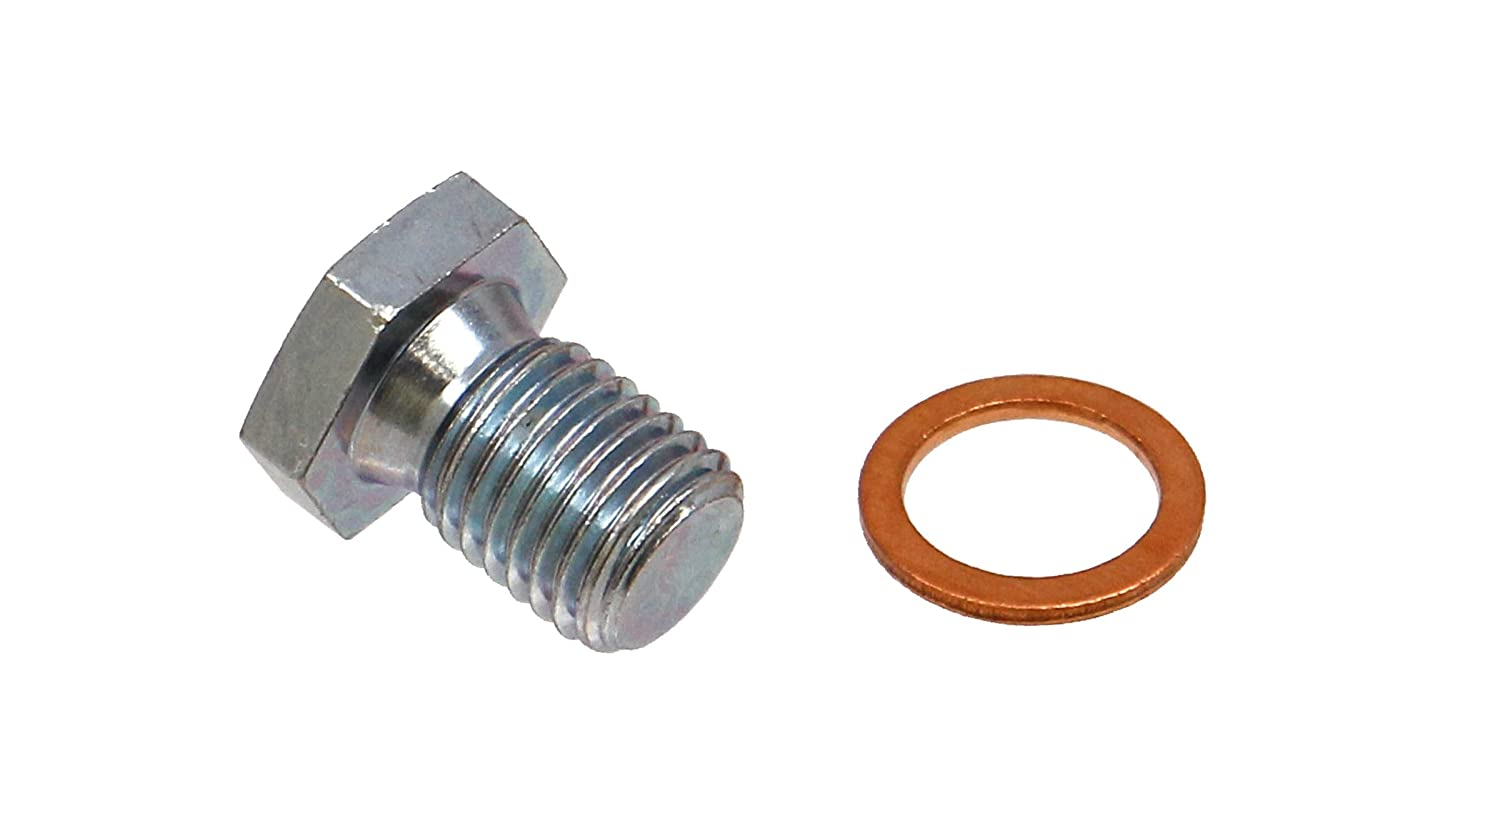 APDTY 103945 Transmission Oil Drain Plug Replaces OE 24233099